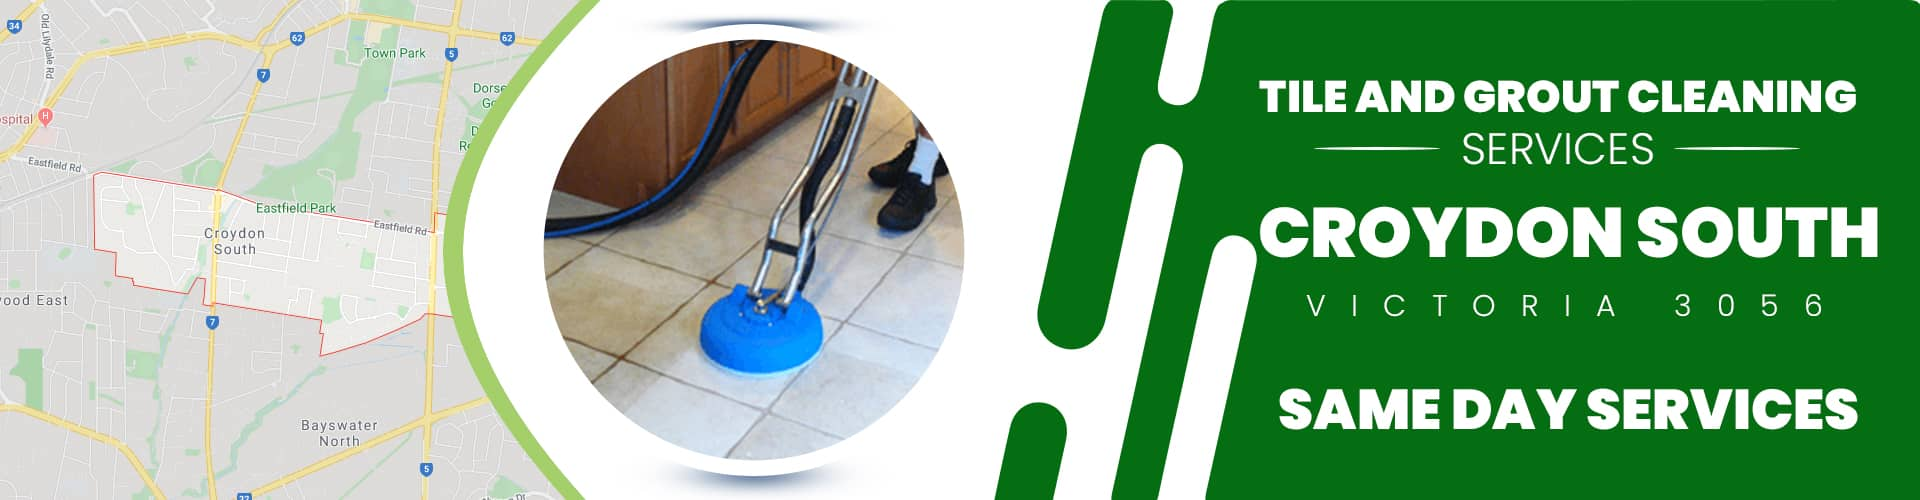 Tile Cleaning Croydon South